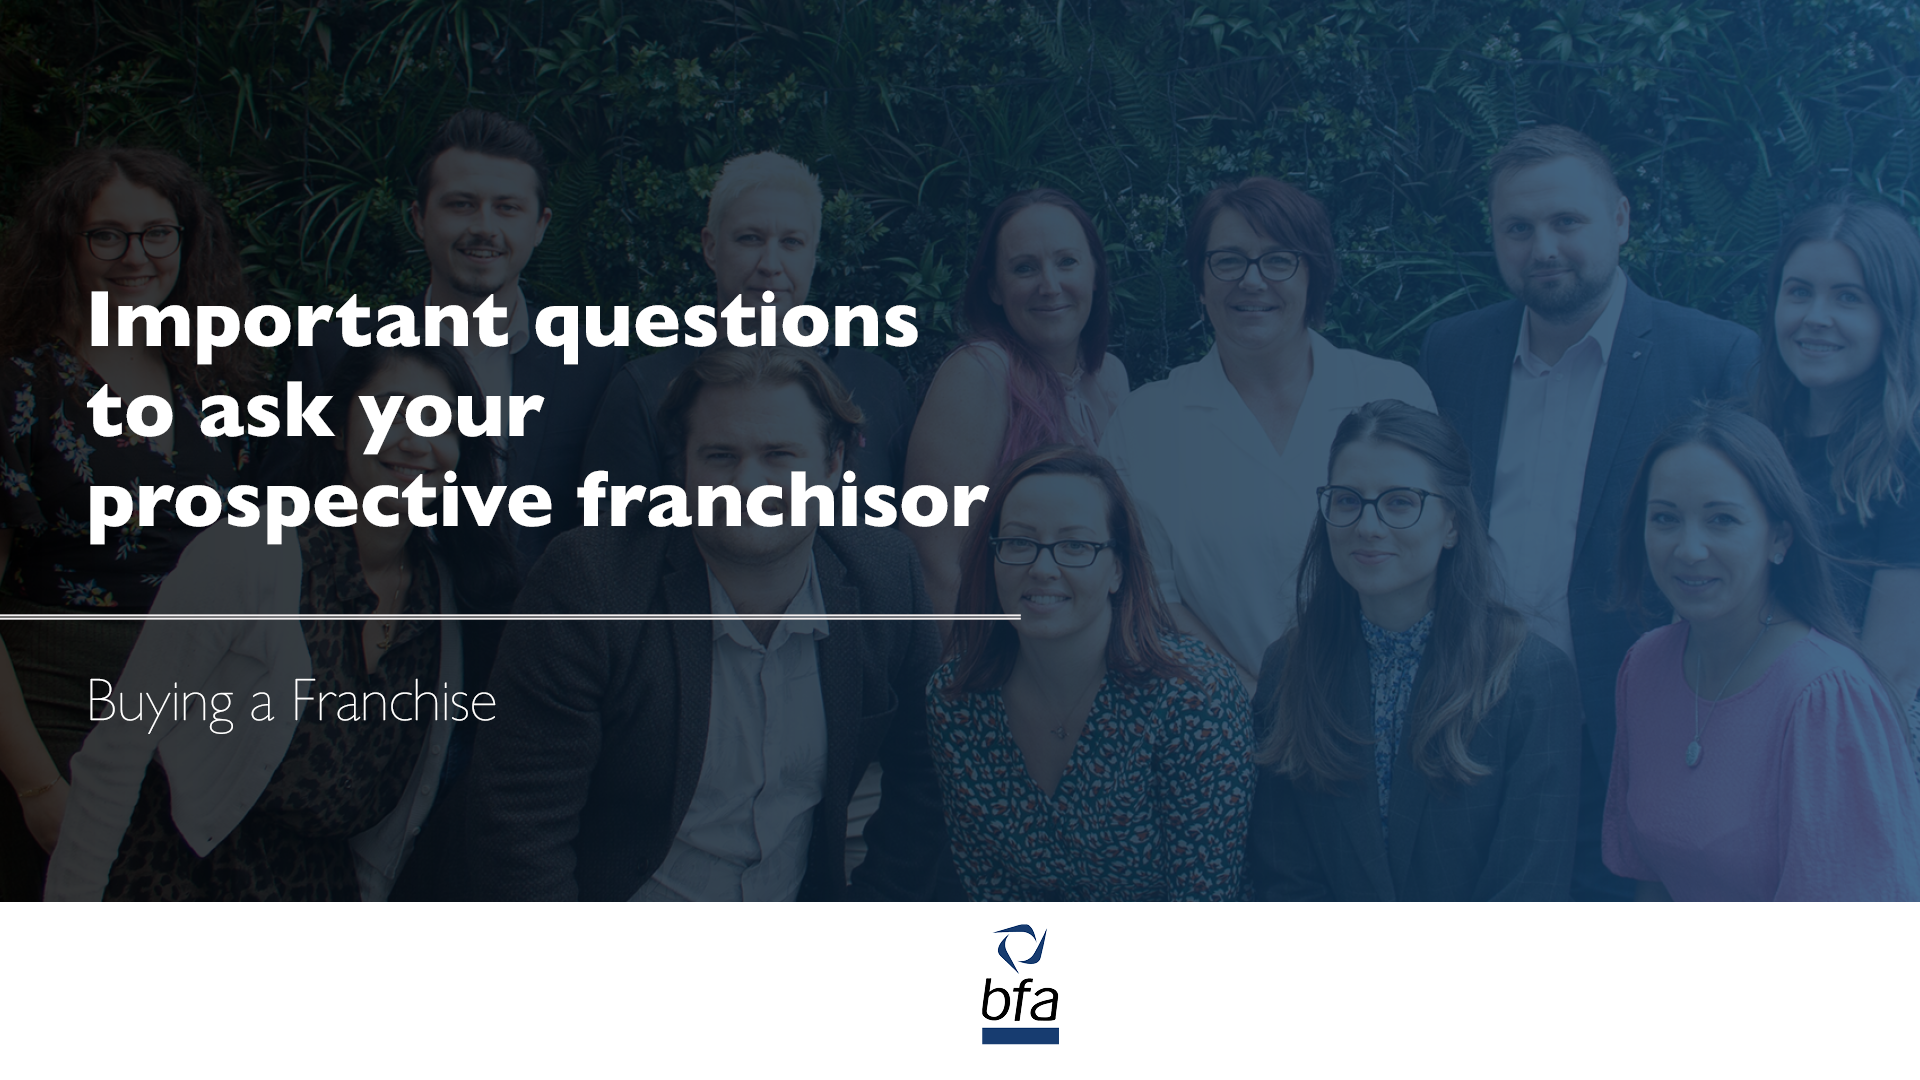 Important questions to ask your prospective franchisor